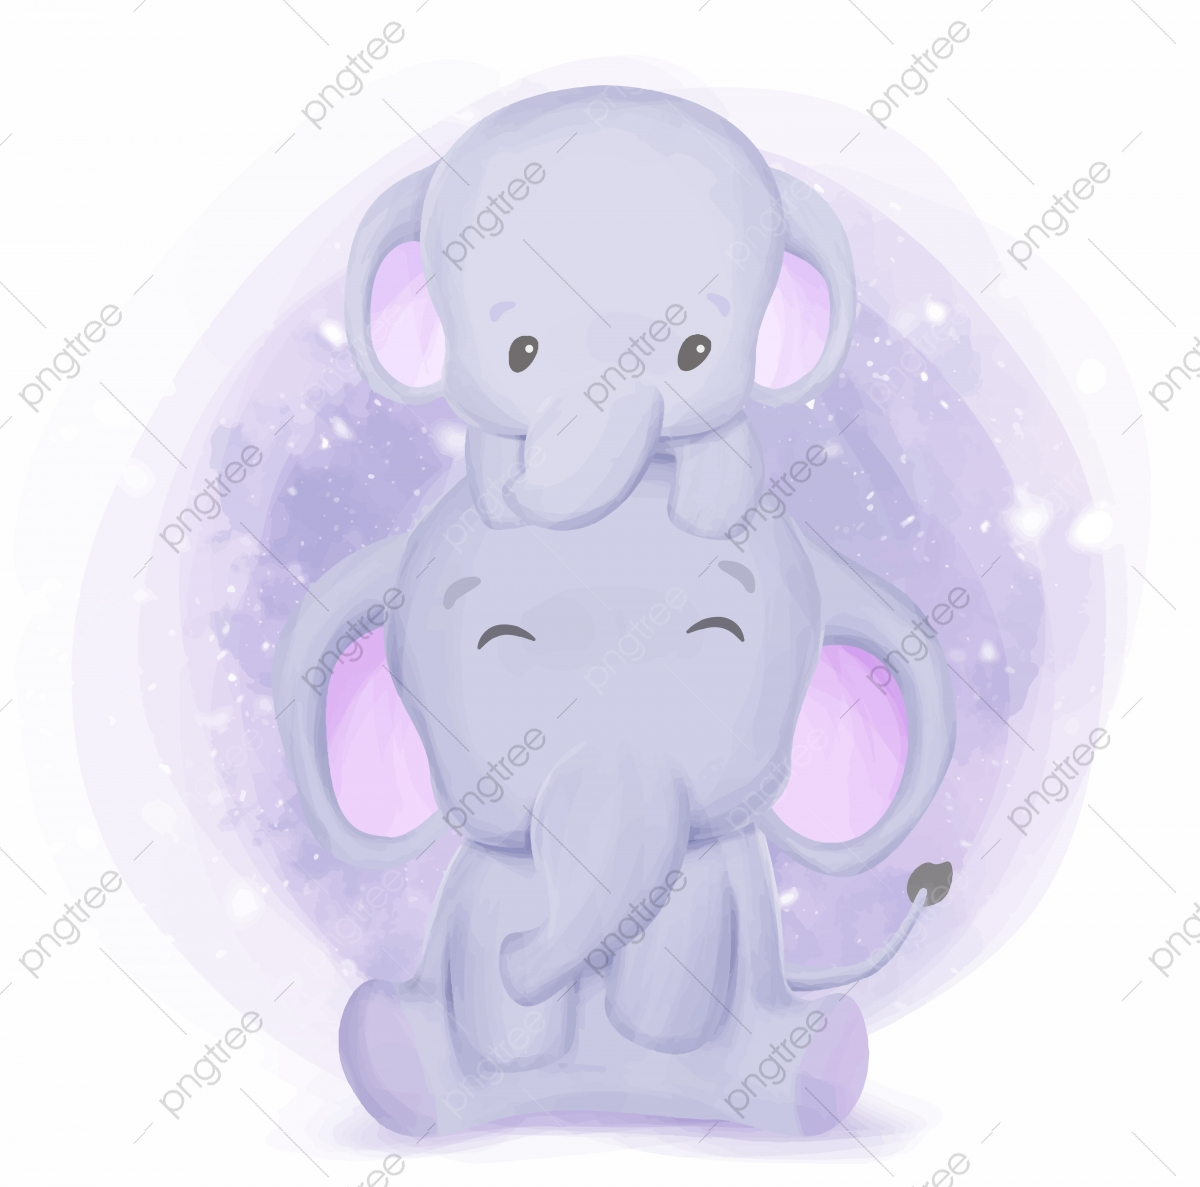 Happy Life Of Elephant Family Adorable Animal Art Png And Vector With Transparent Background For Free Download White elephant, traditional wind pattern elephant family name. https pngtree com freepng happy life of elephant family 5241885 html